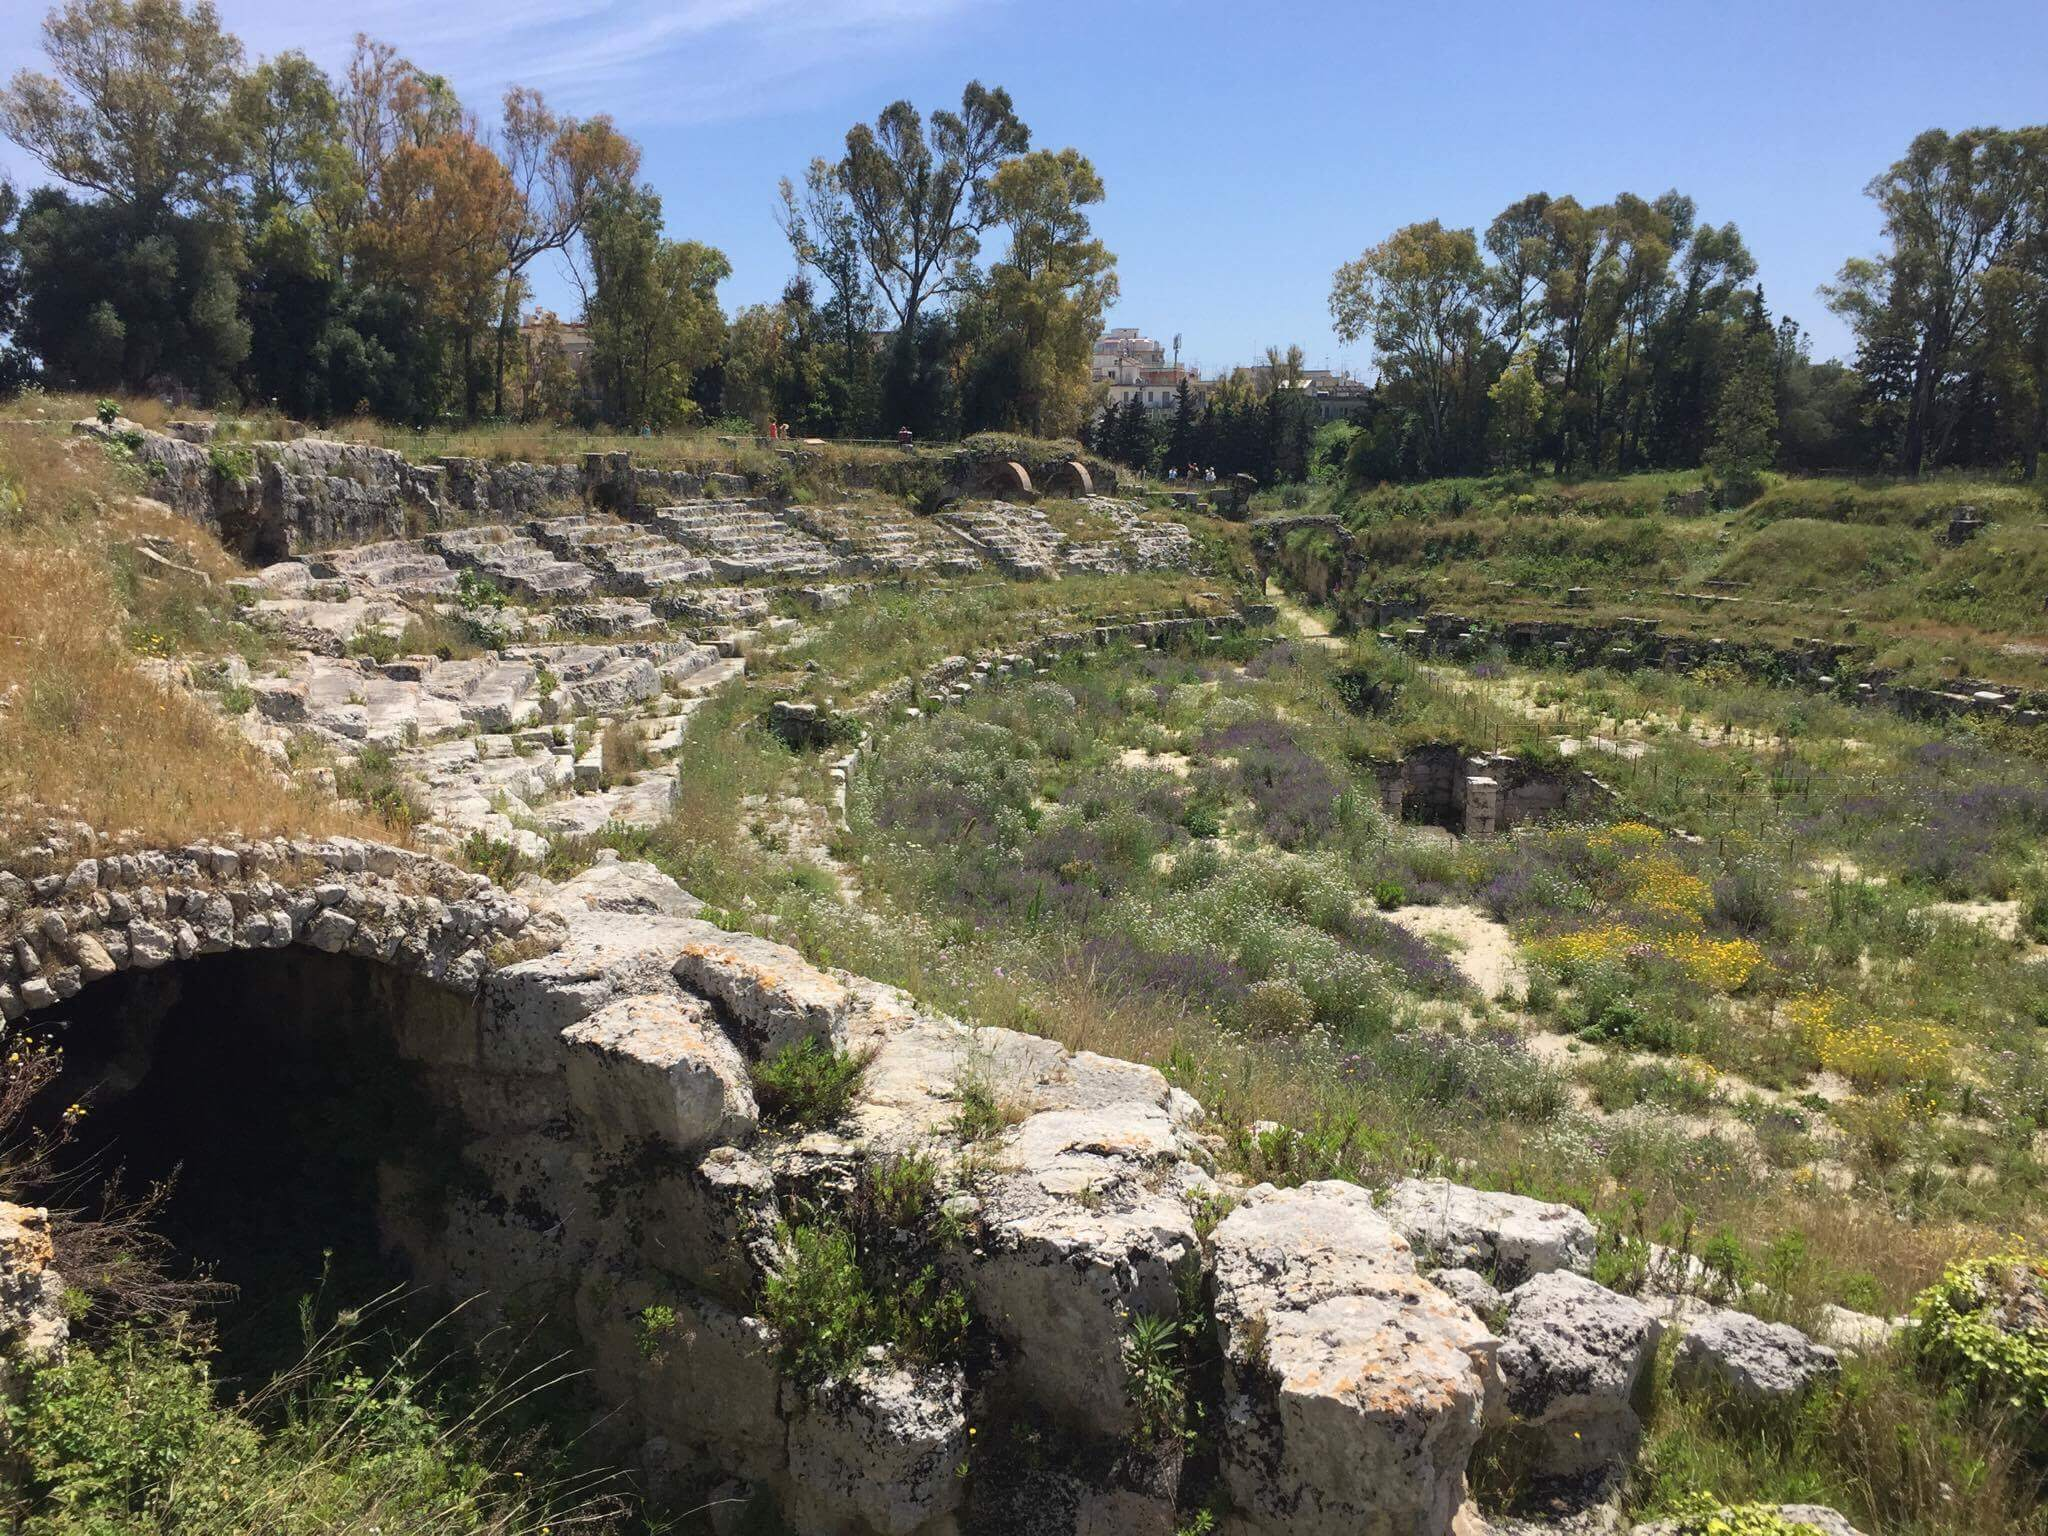 The Romans later built an amphitheater just walking distance from the Greek theater. You will be able to see this too on your tour to the archaeological park.